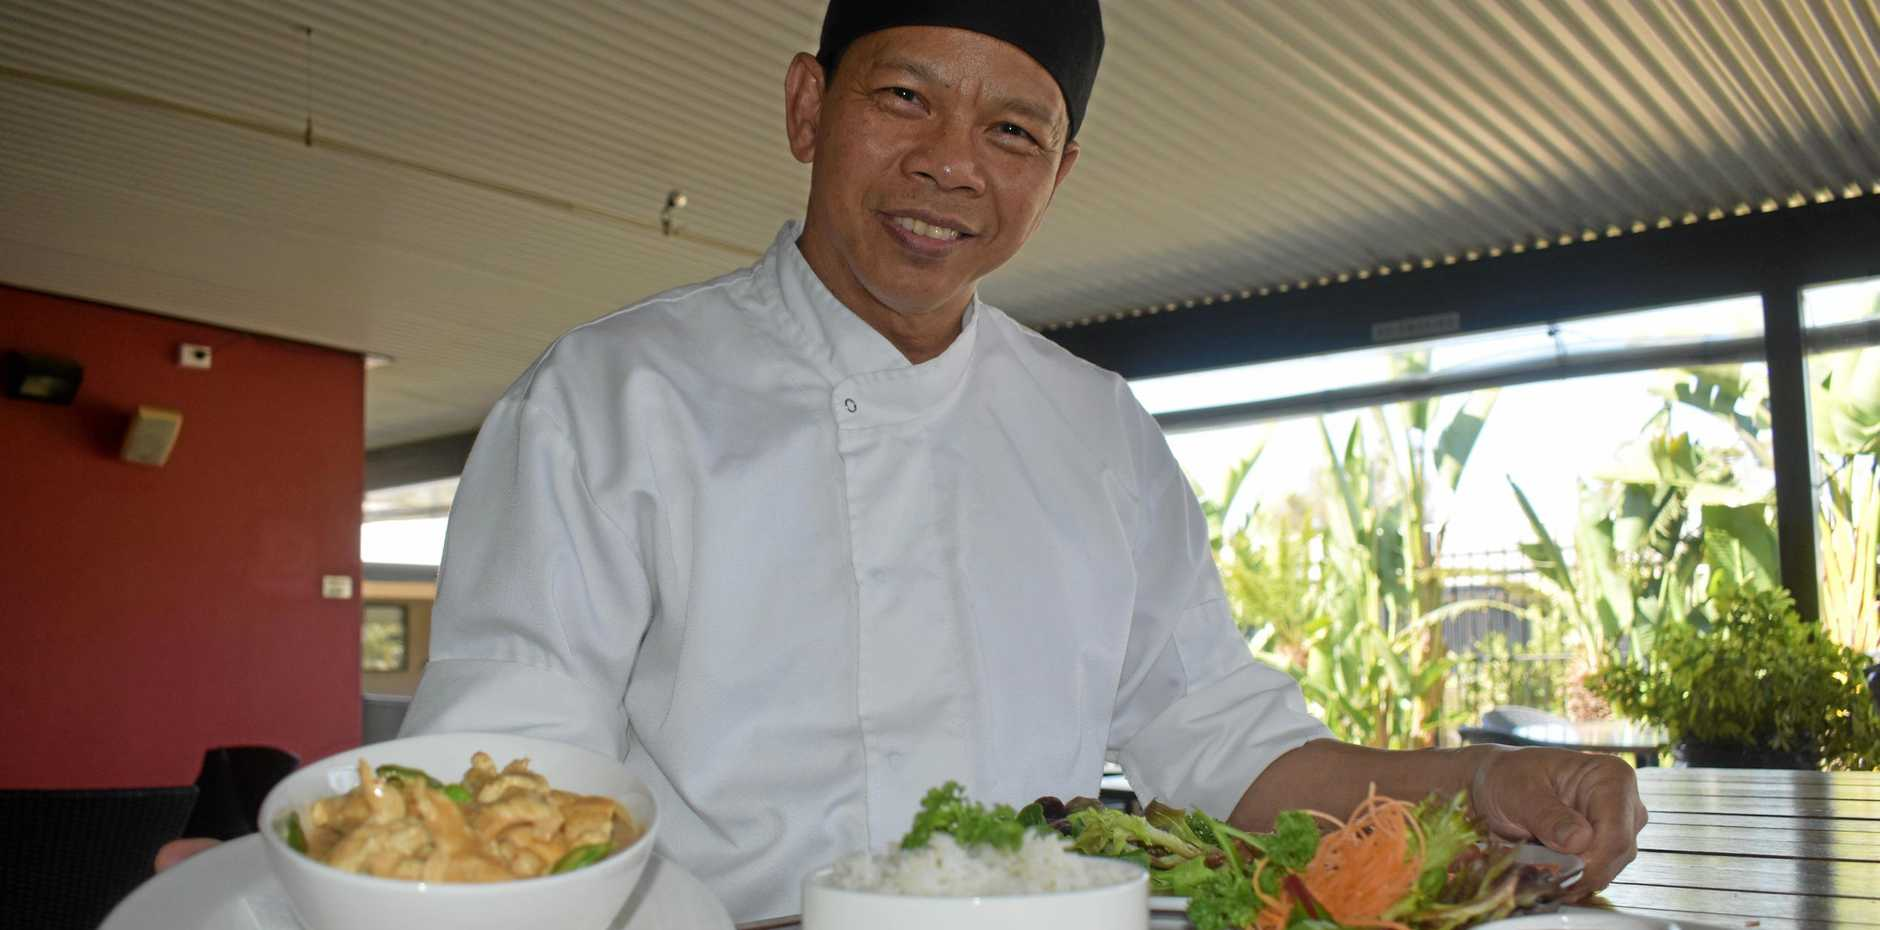 Simon Lee is the new chef at Roma's BCs restaurant. Specialising in Asian flavours, he is looking forward to his new life in Roma.